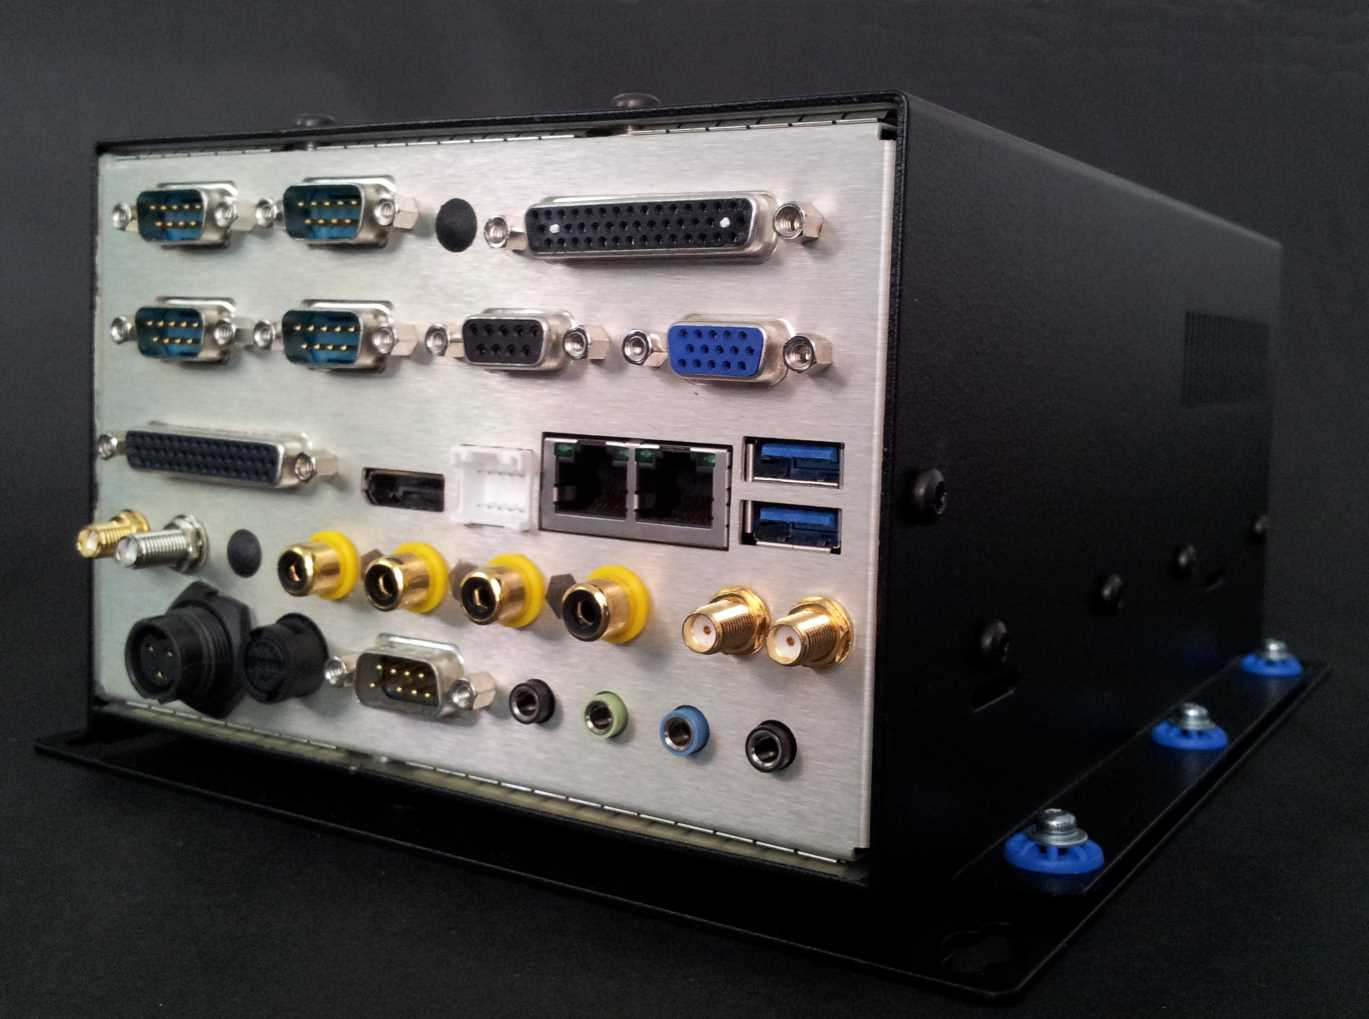 A-PC2 Main Box